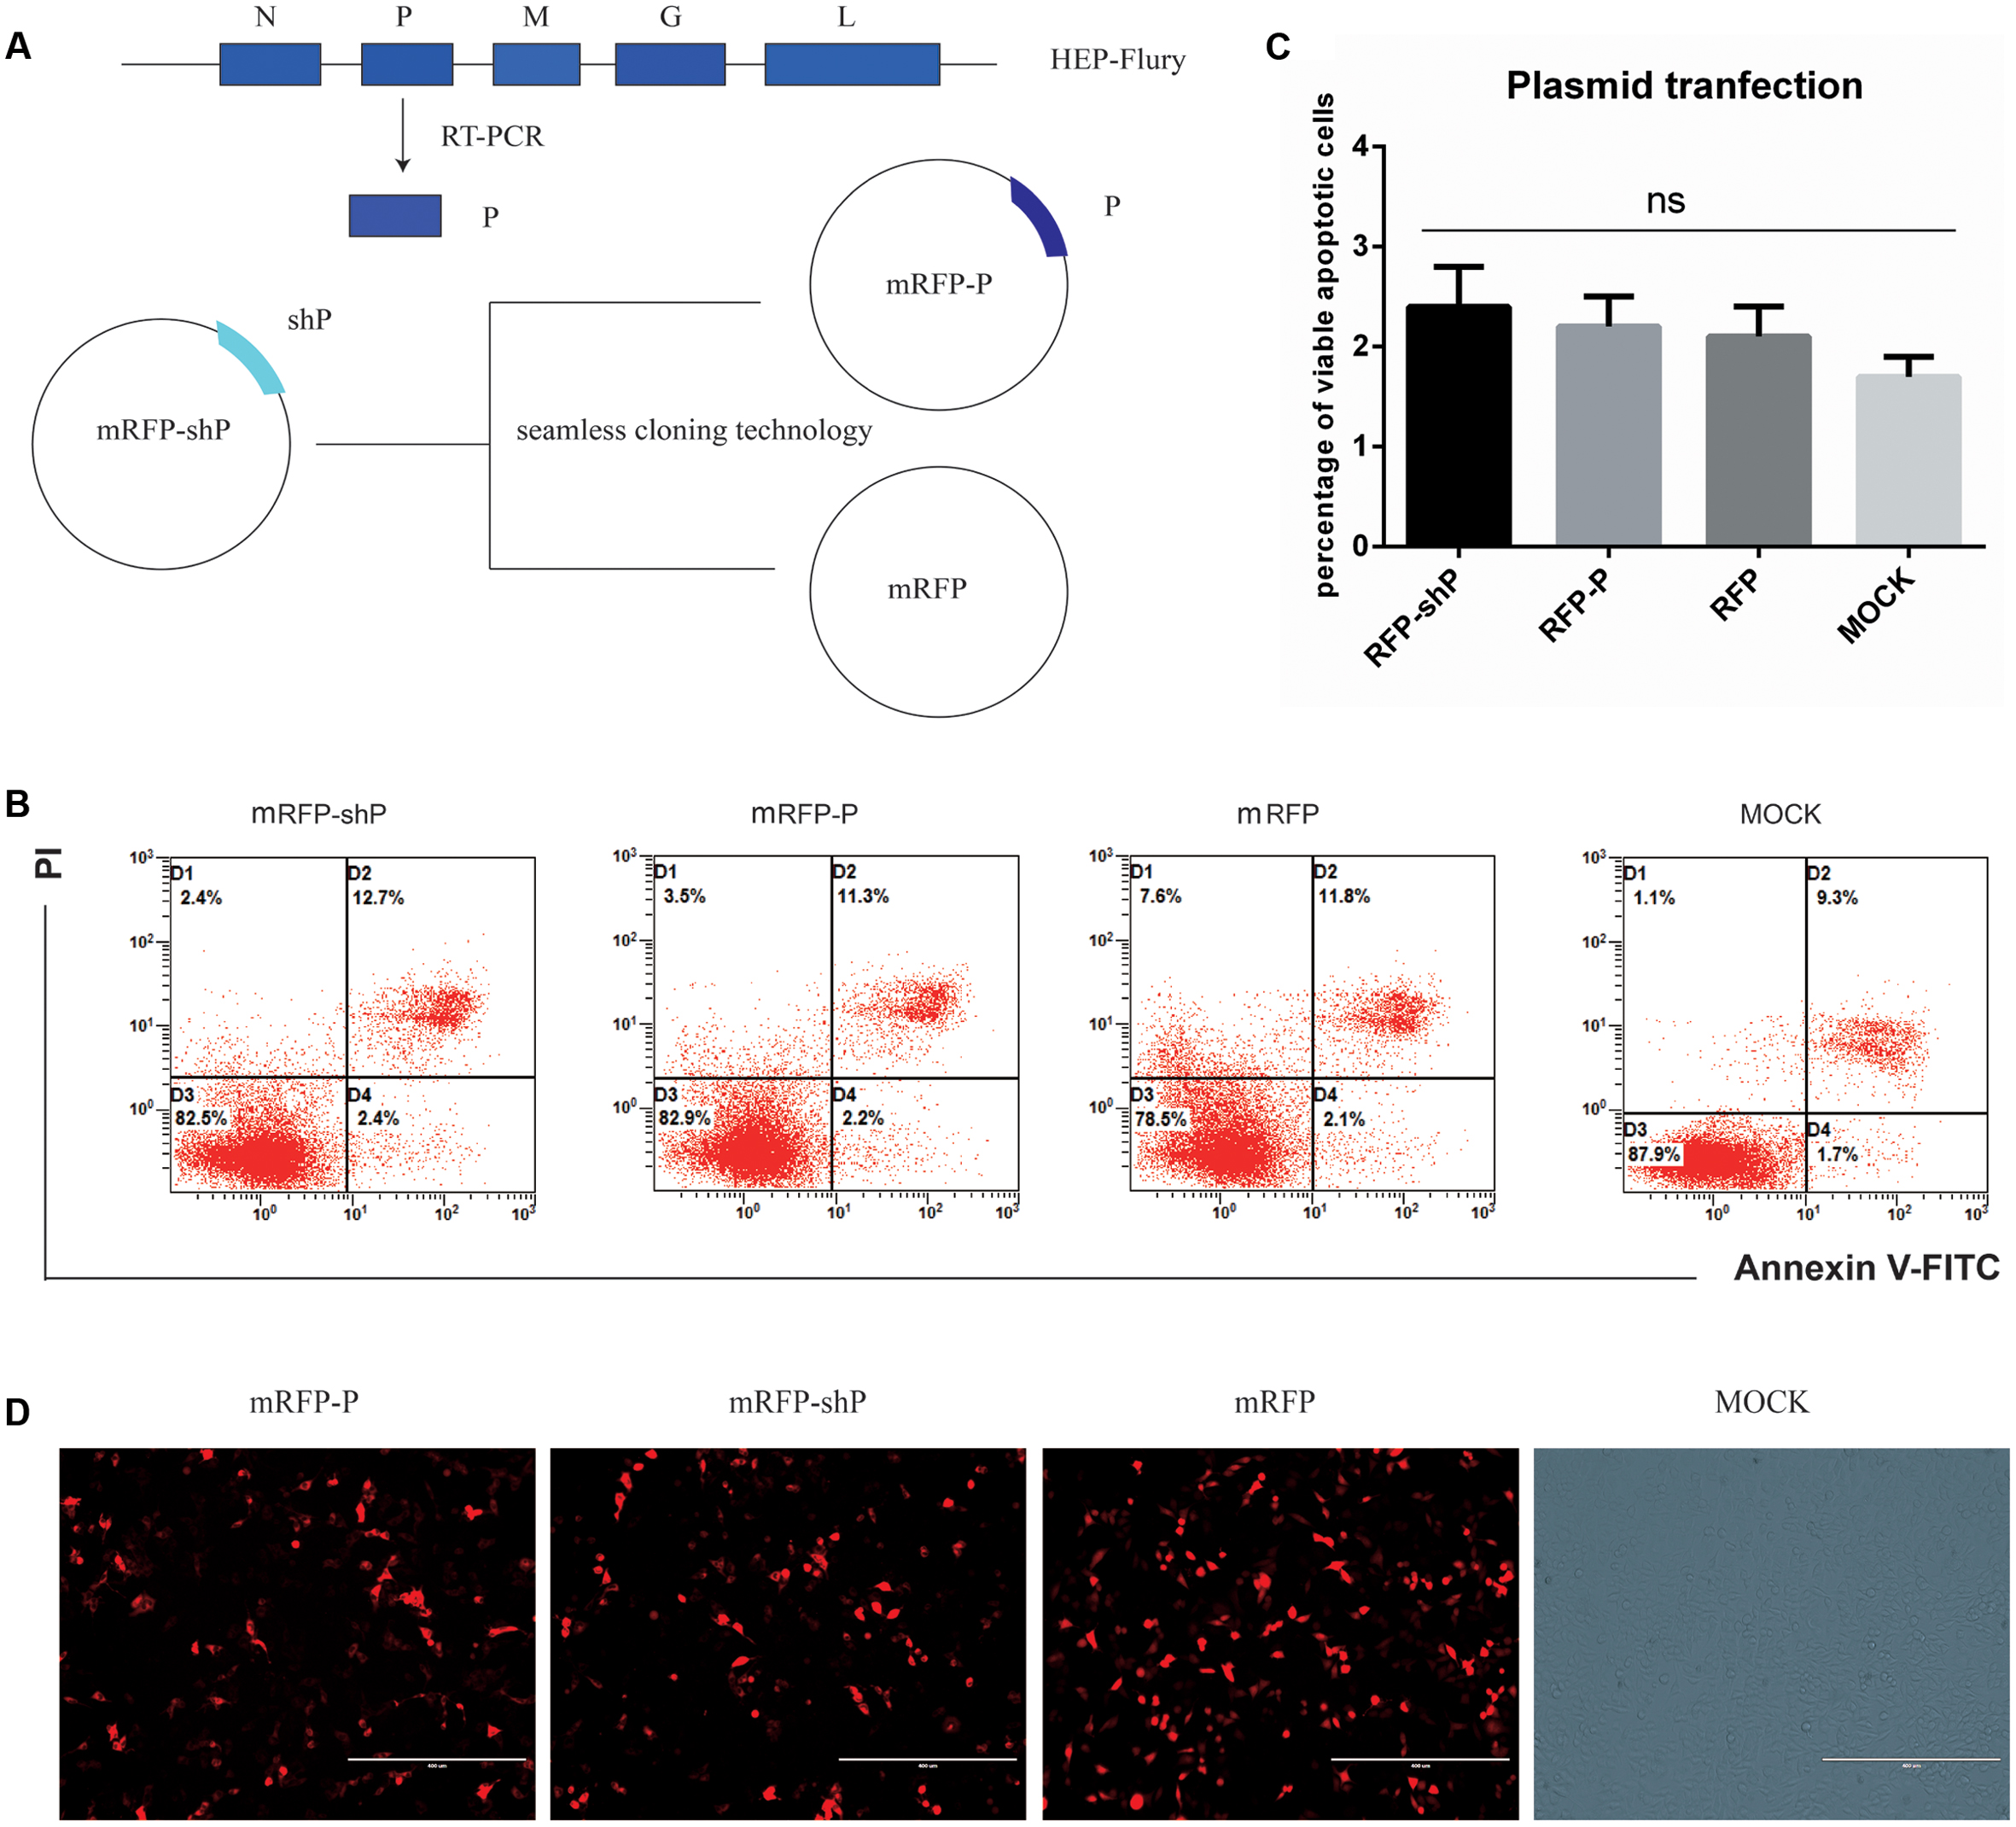 Frontiers phosphoprotein gene contributes to the enhanced frontiersin ccuart Gallery